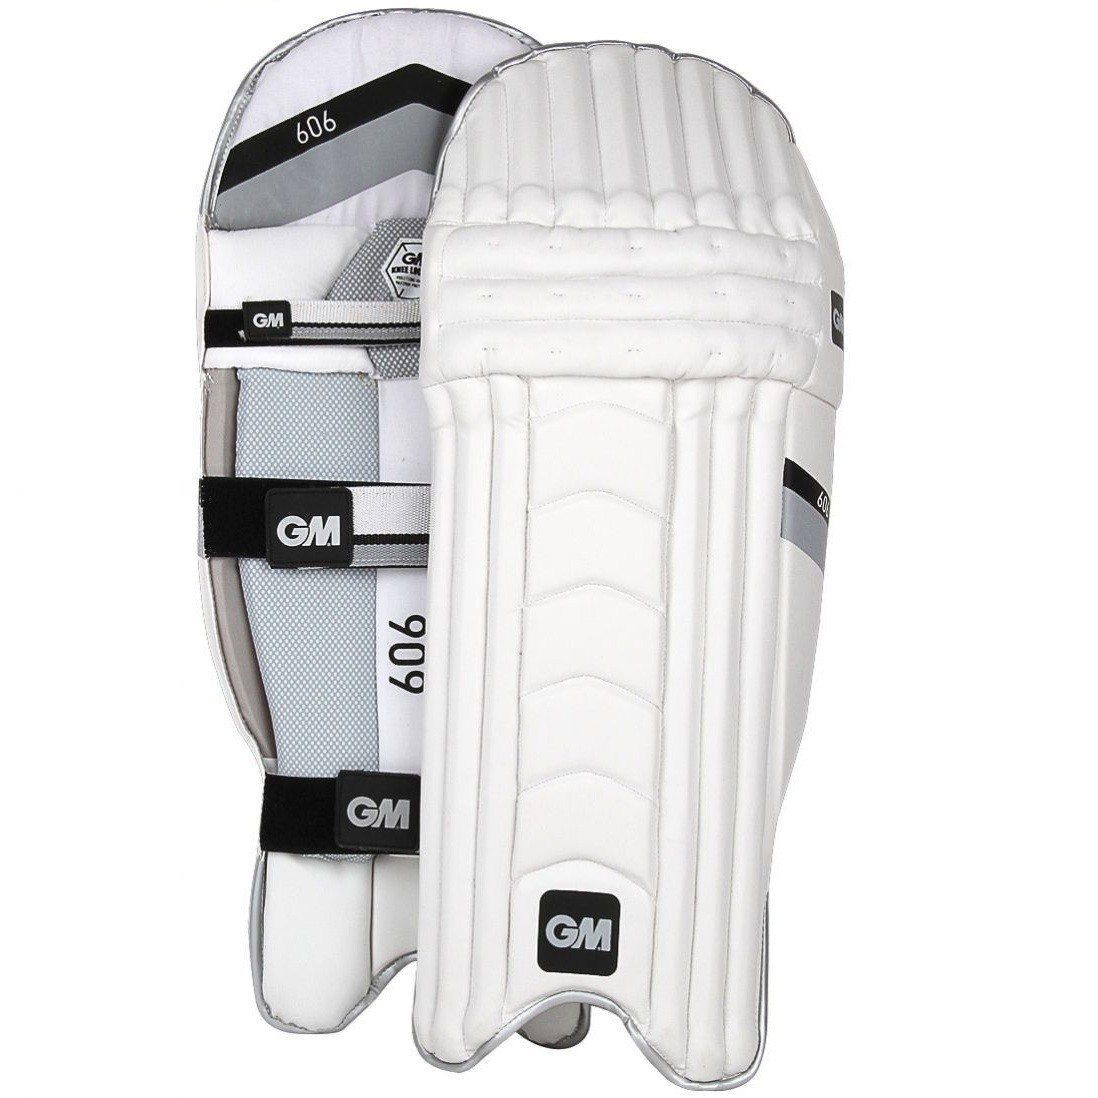 GM 606 Cricket Batting Leg guards